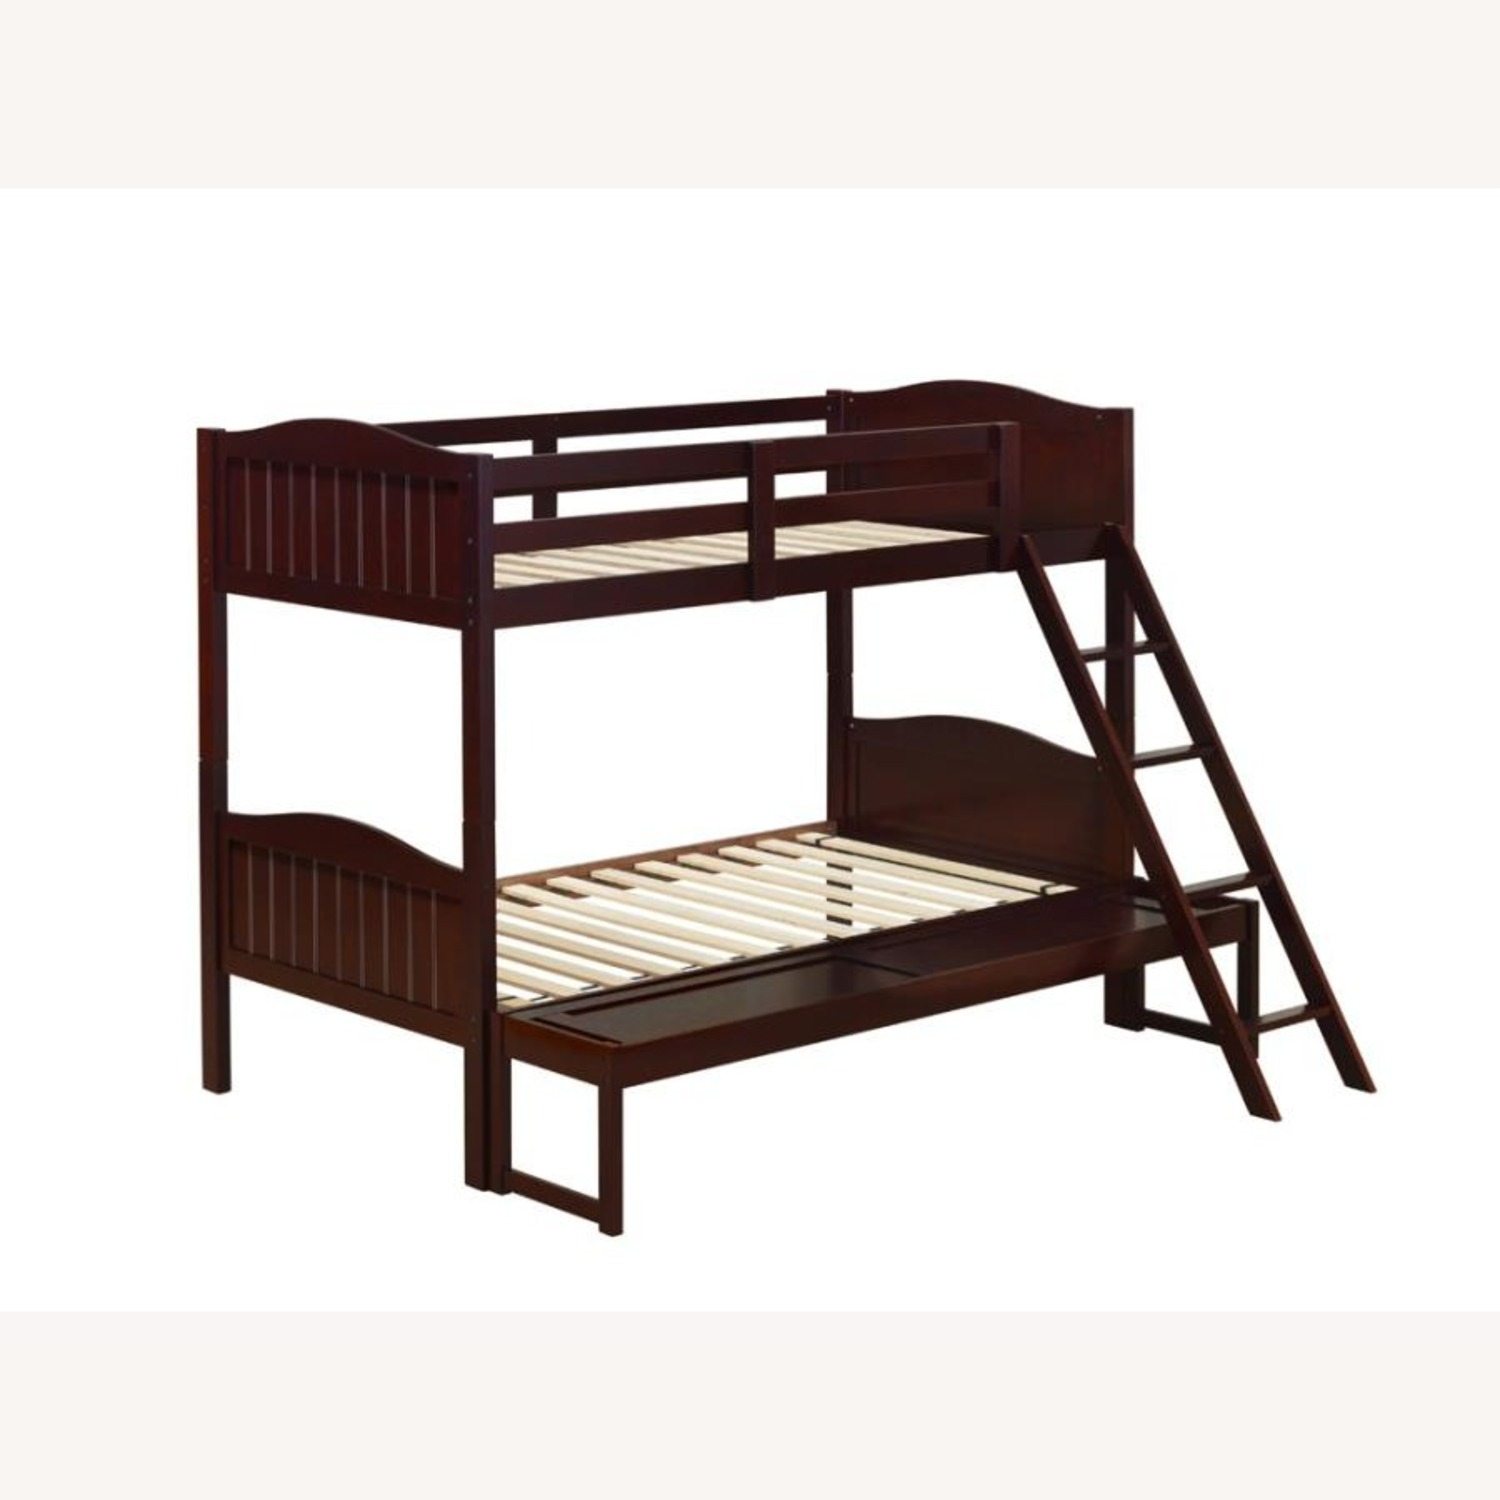 Twin-Over-Full Bunk Bed In Espresso Finish - image-1